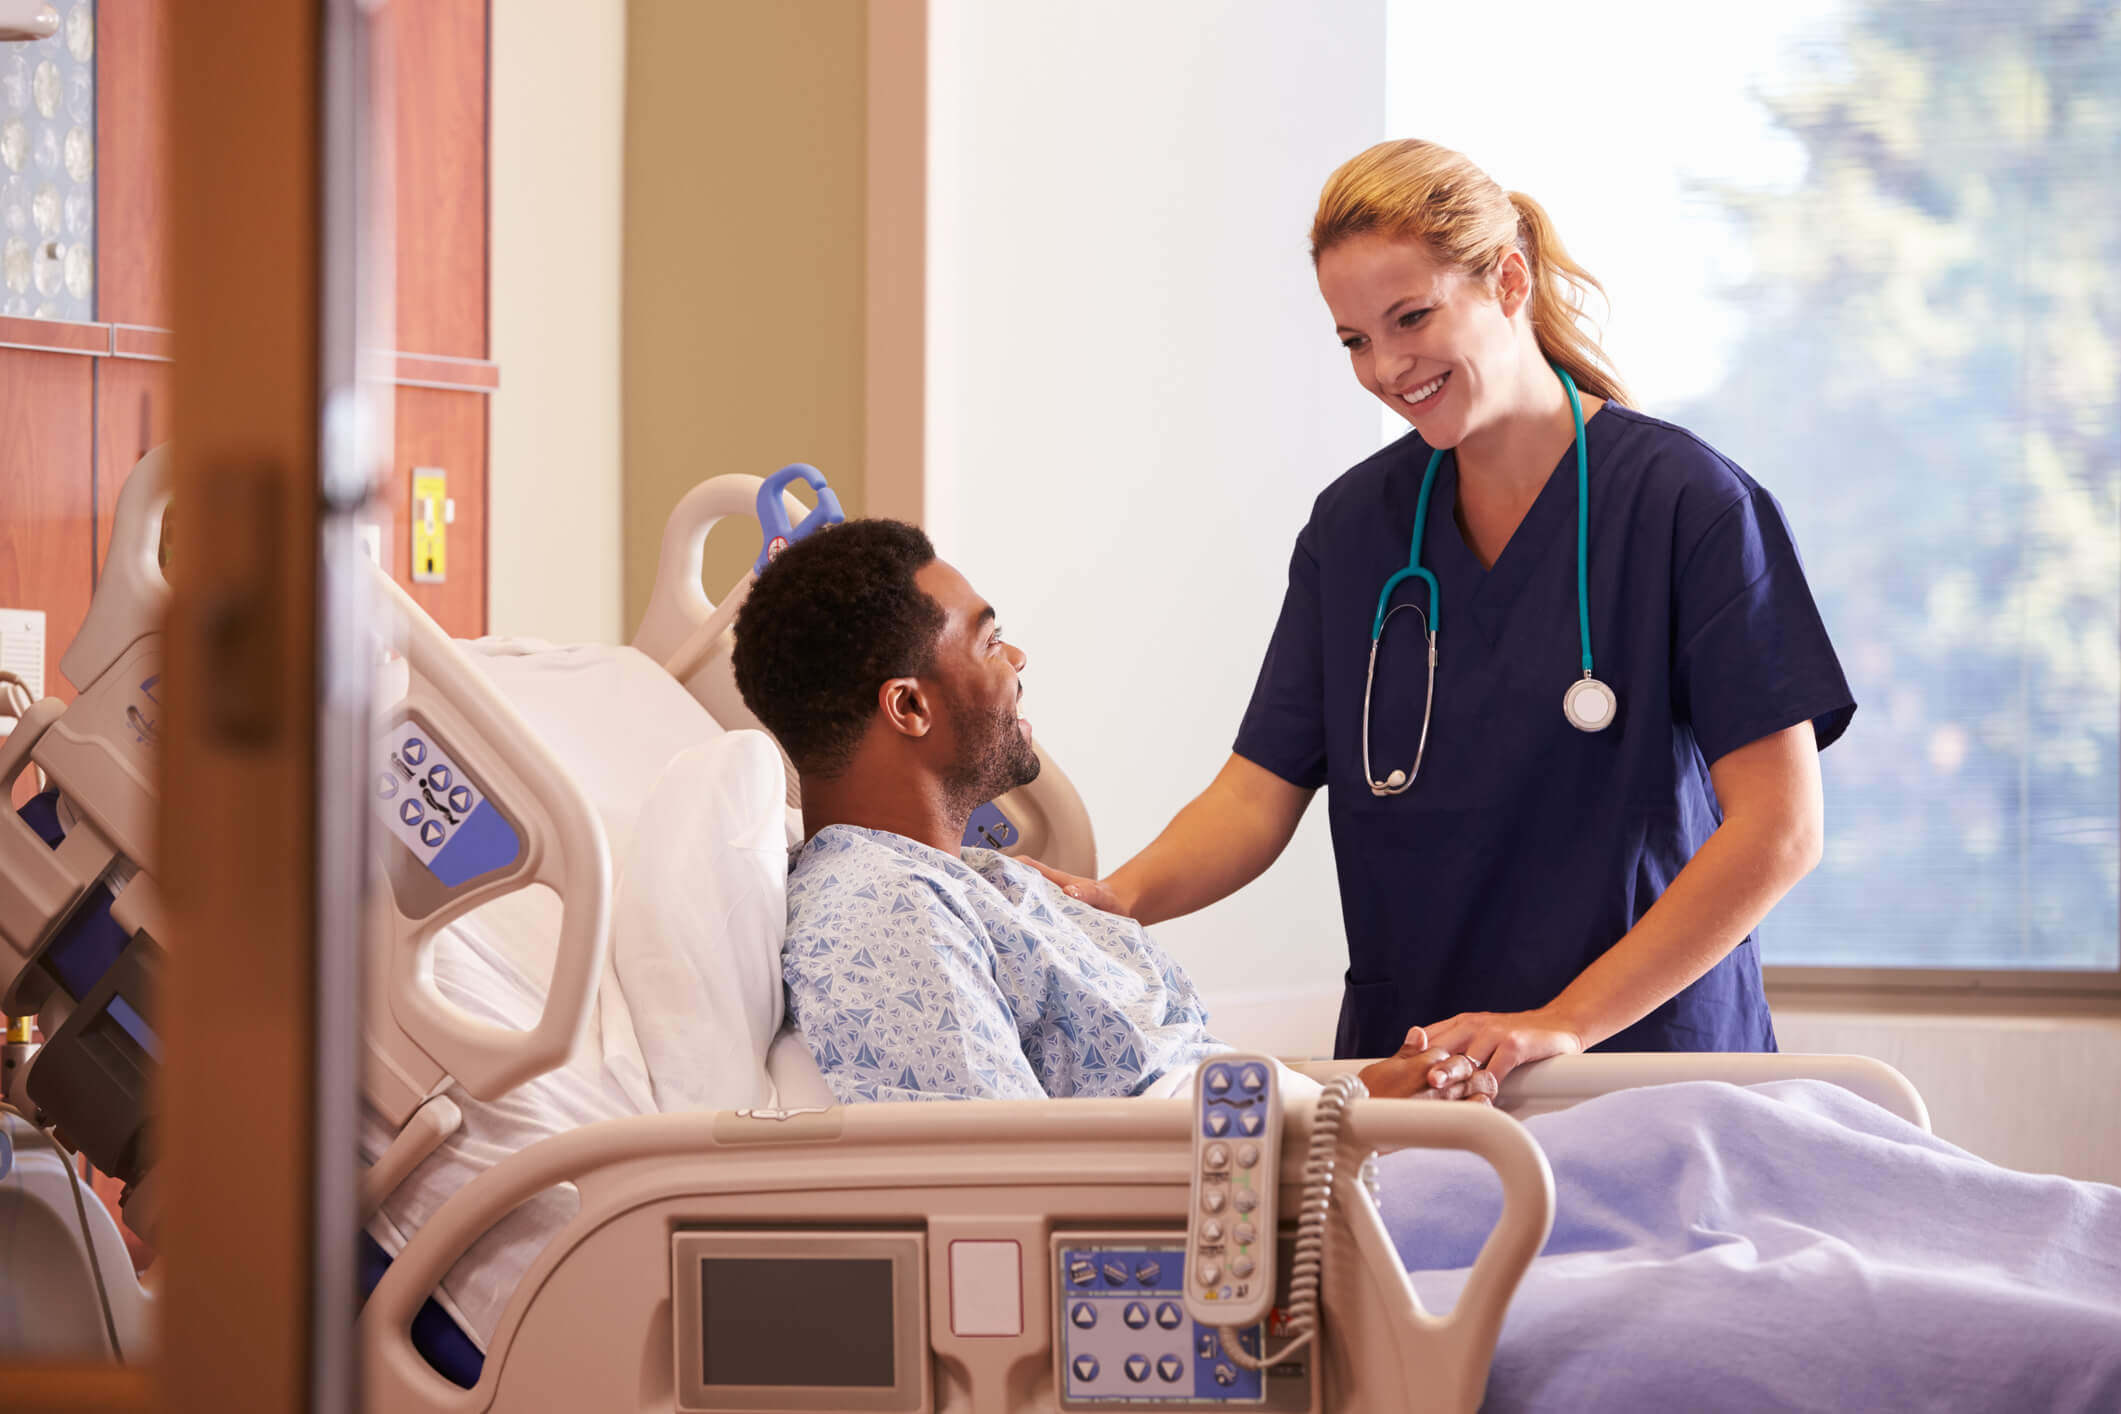 experiences of nurses grief after patient Grief and bereavement are universal experiences that the grief (2) the nurse must assist the patient with and after, and is part of grief and bereavement.